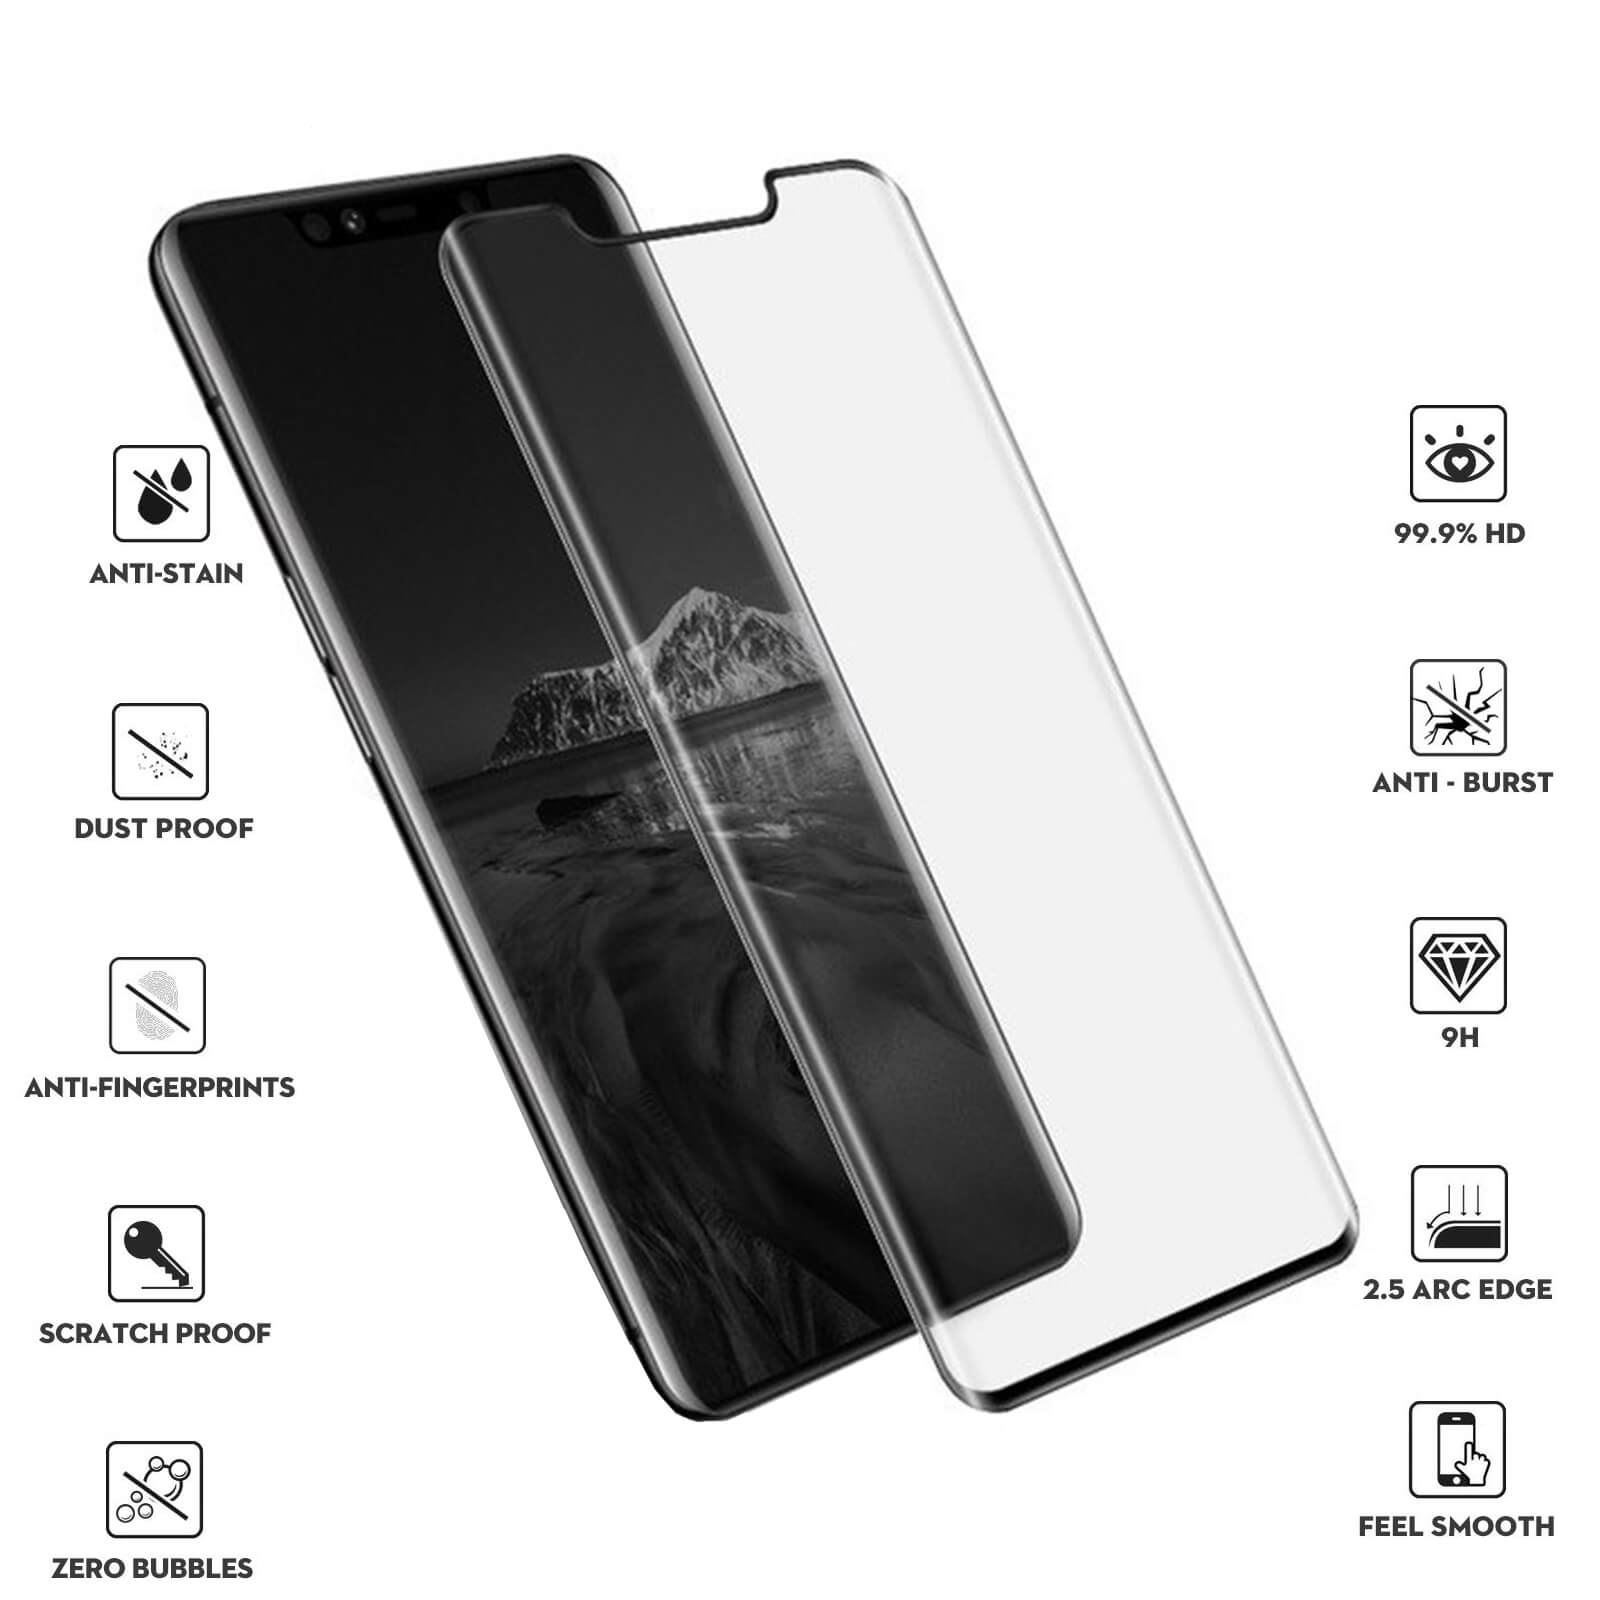 Huawei Mate 20 Tempered Glass Screen Protector - Black